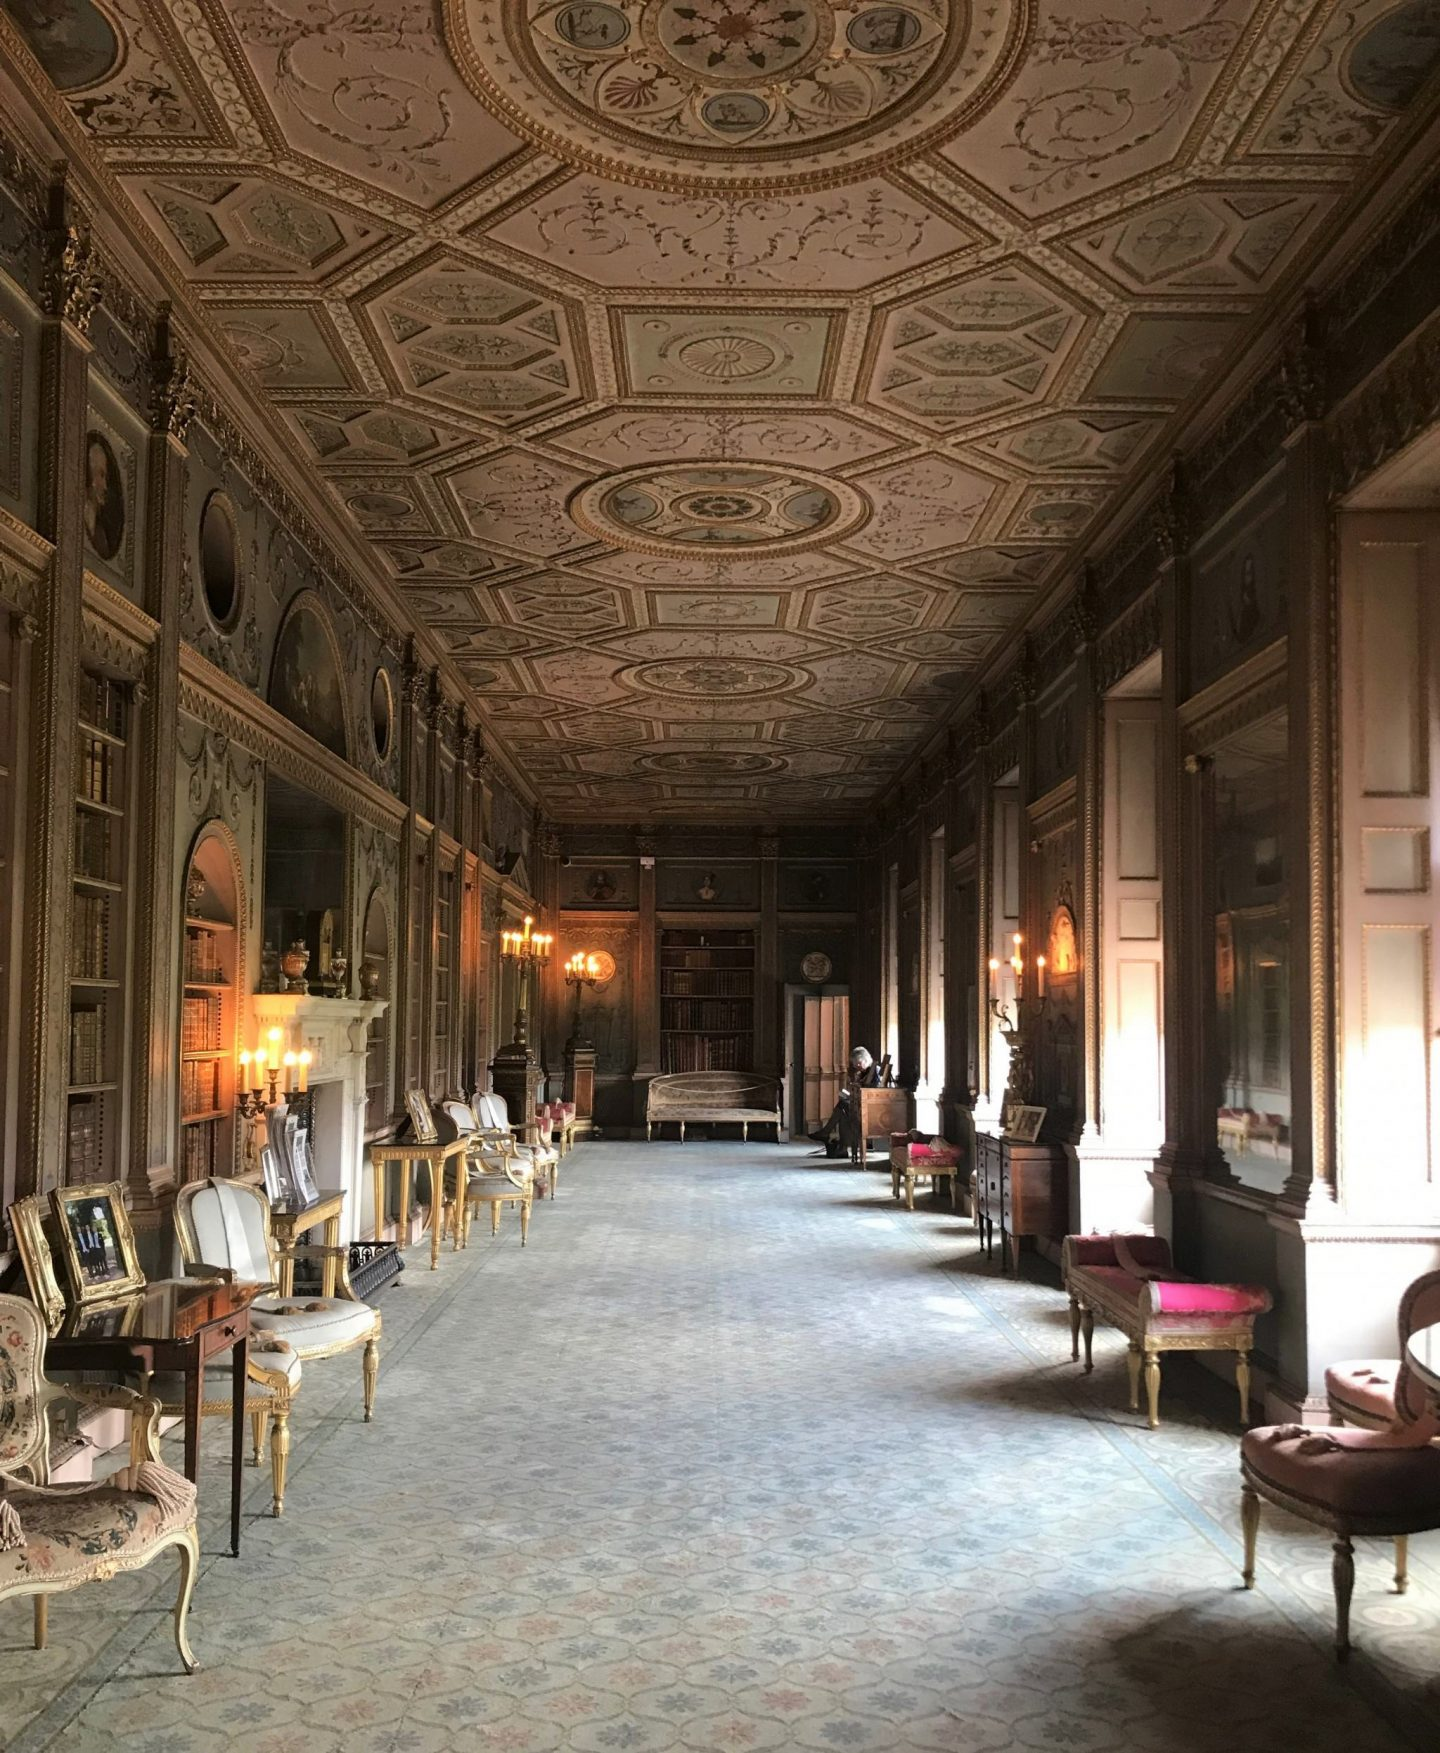 the Syon Park gardens that I often visit has a huge stately home on its grounds and for the last three years that I have visited the gardens, I have never been inside for a nose.